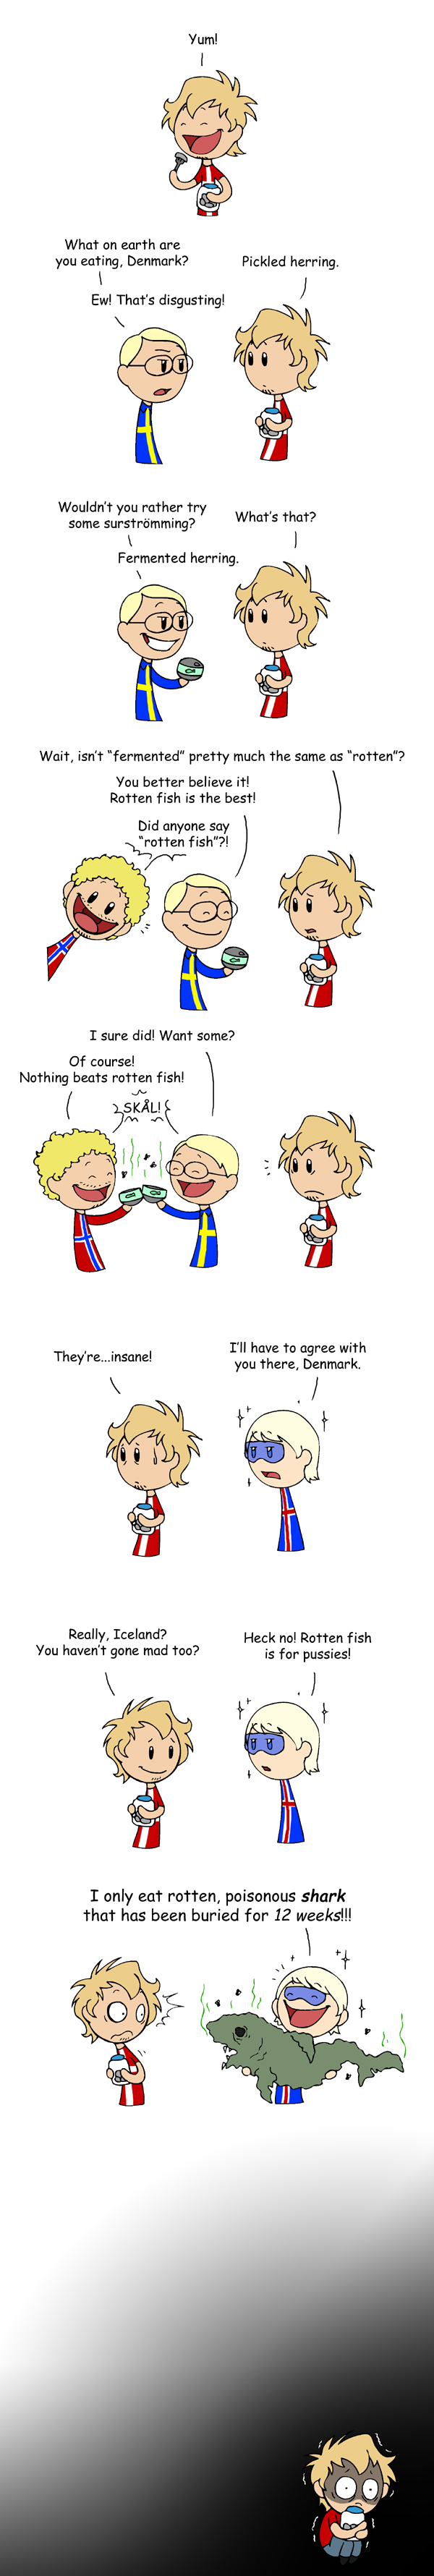 nordics-like-fish.jpg